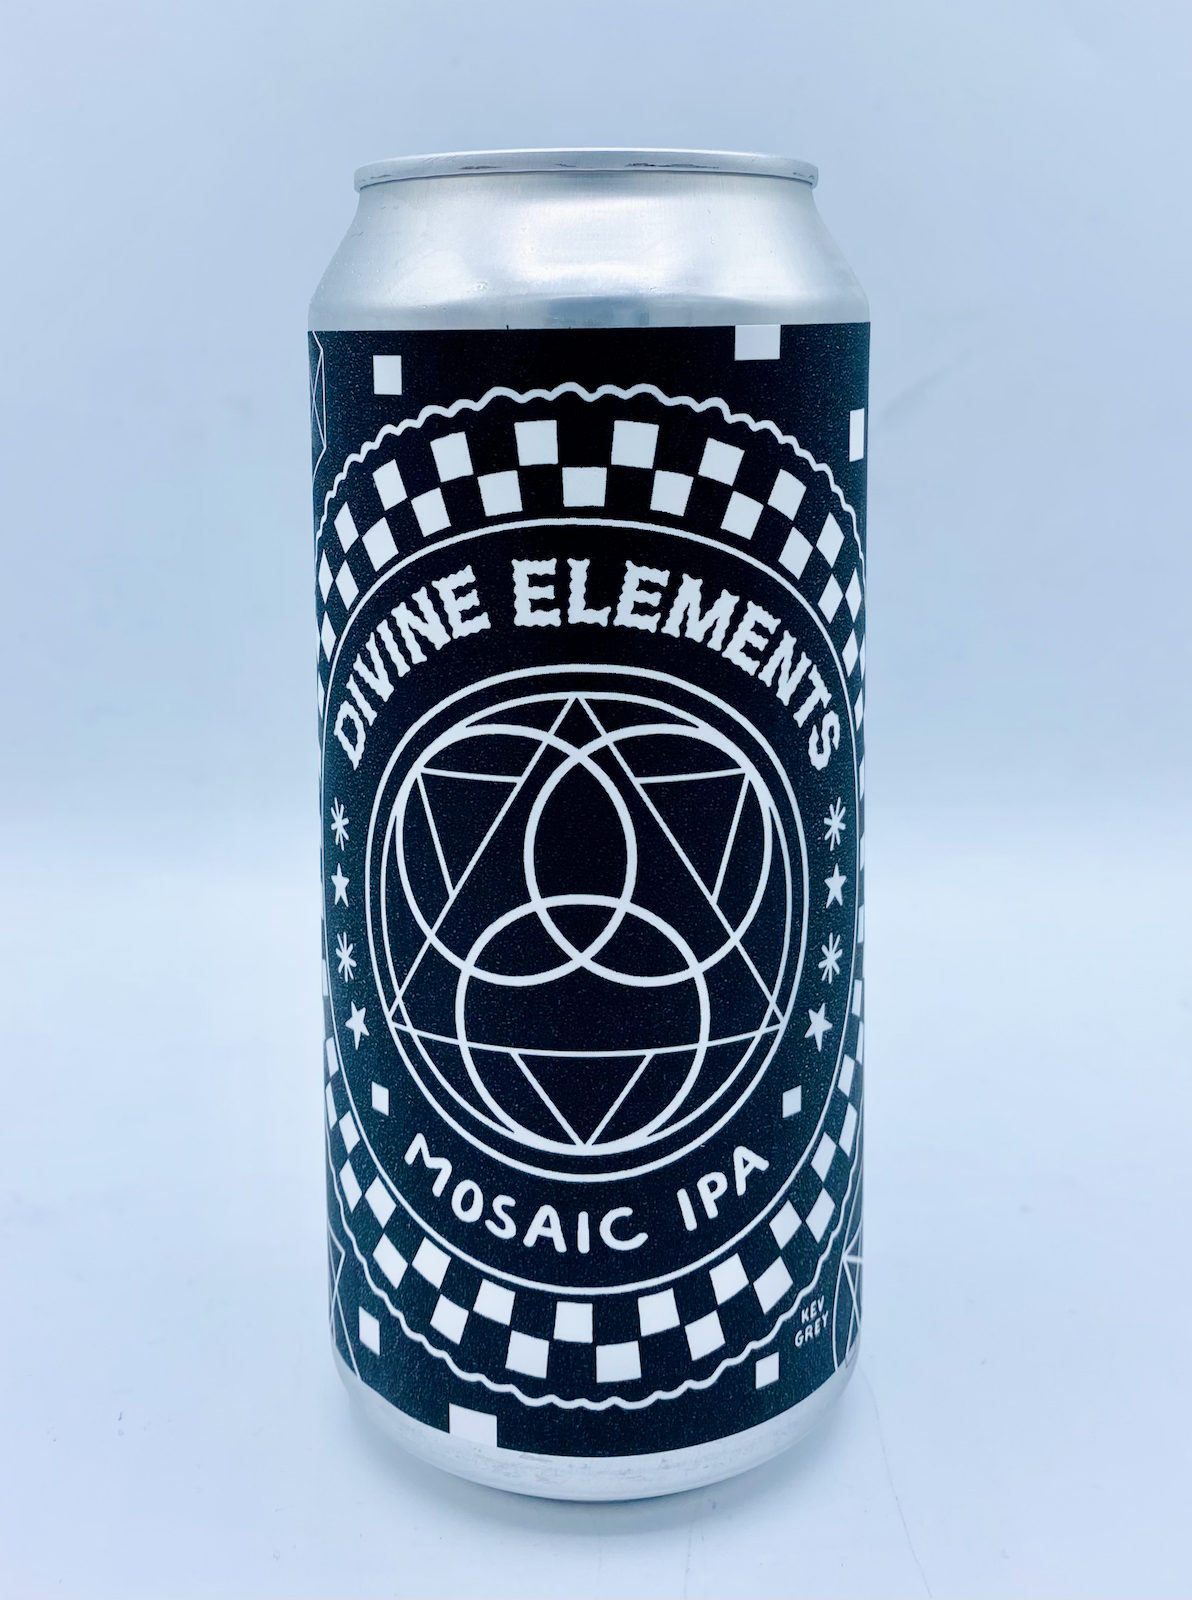 Black Iris Brewery - Divine Elements 6%